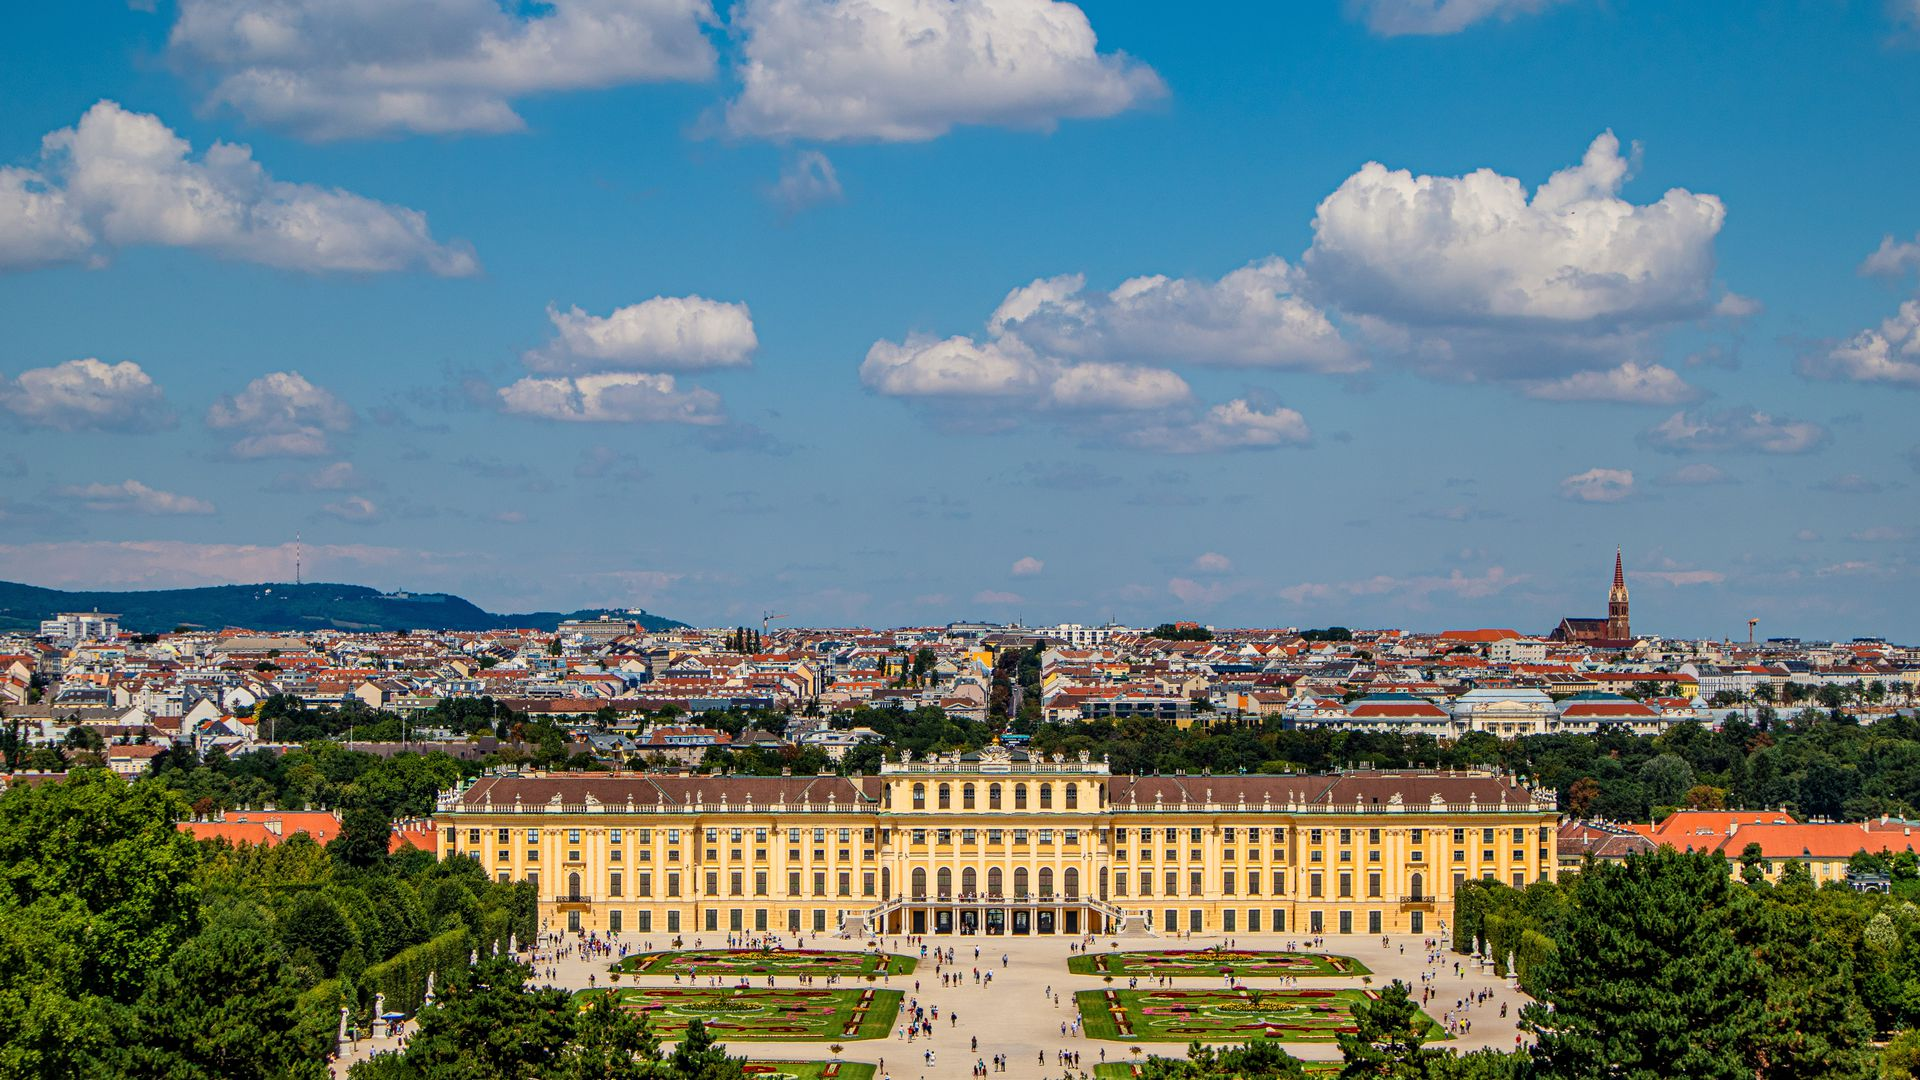 Schonbrunn Palace and Gardens: Audio Guide & Tickets